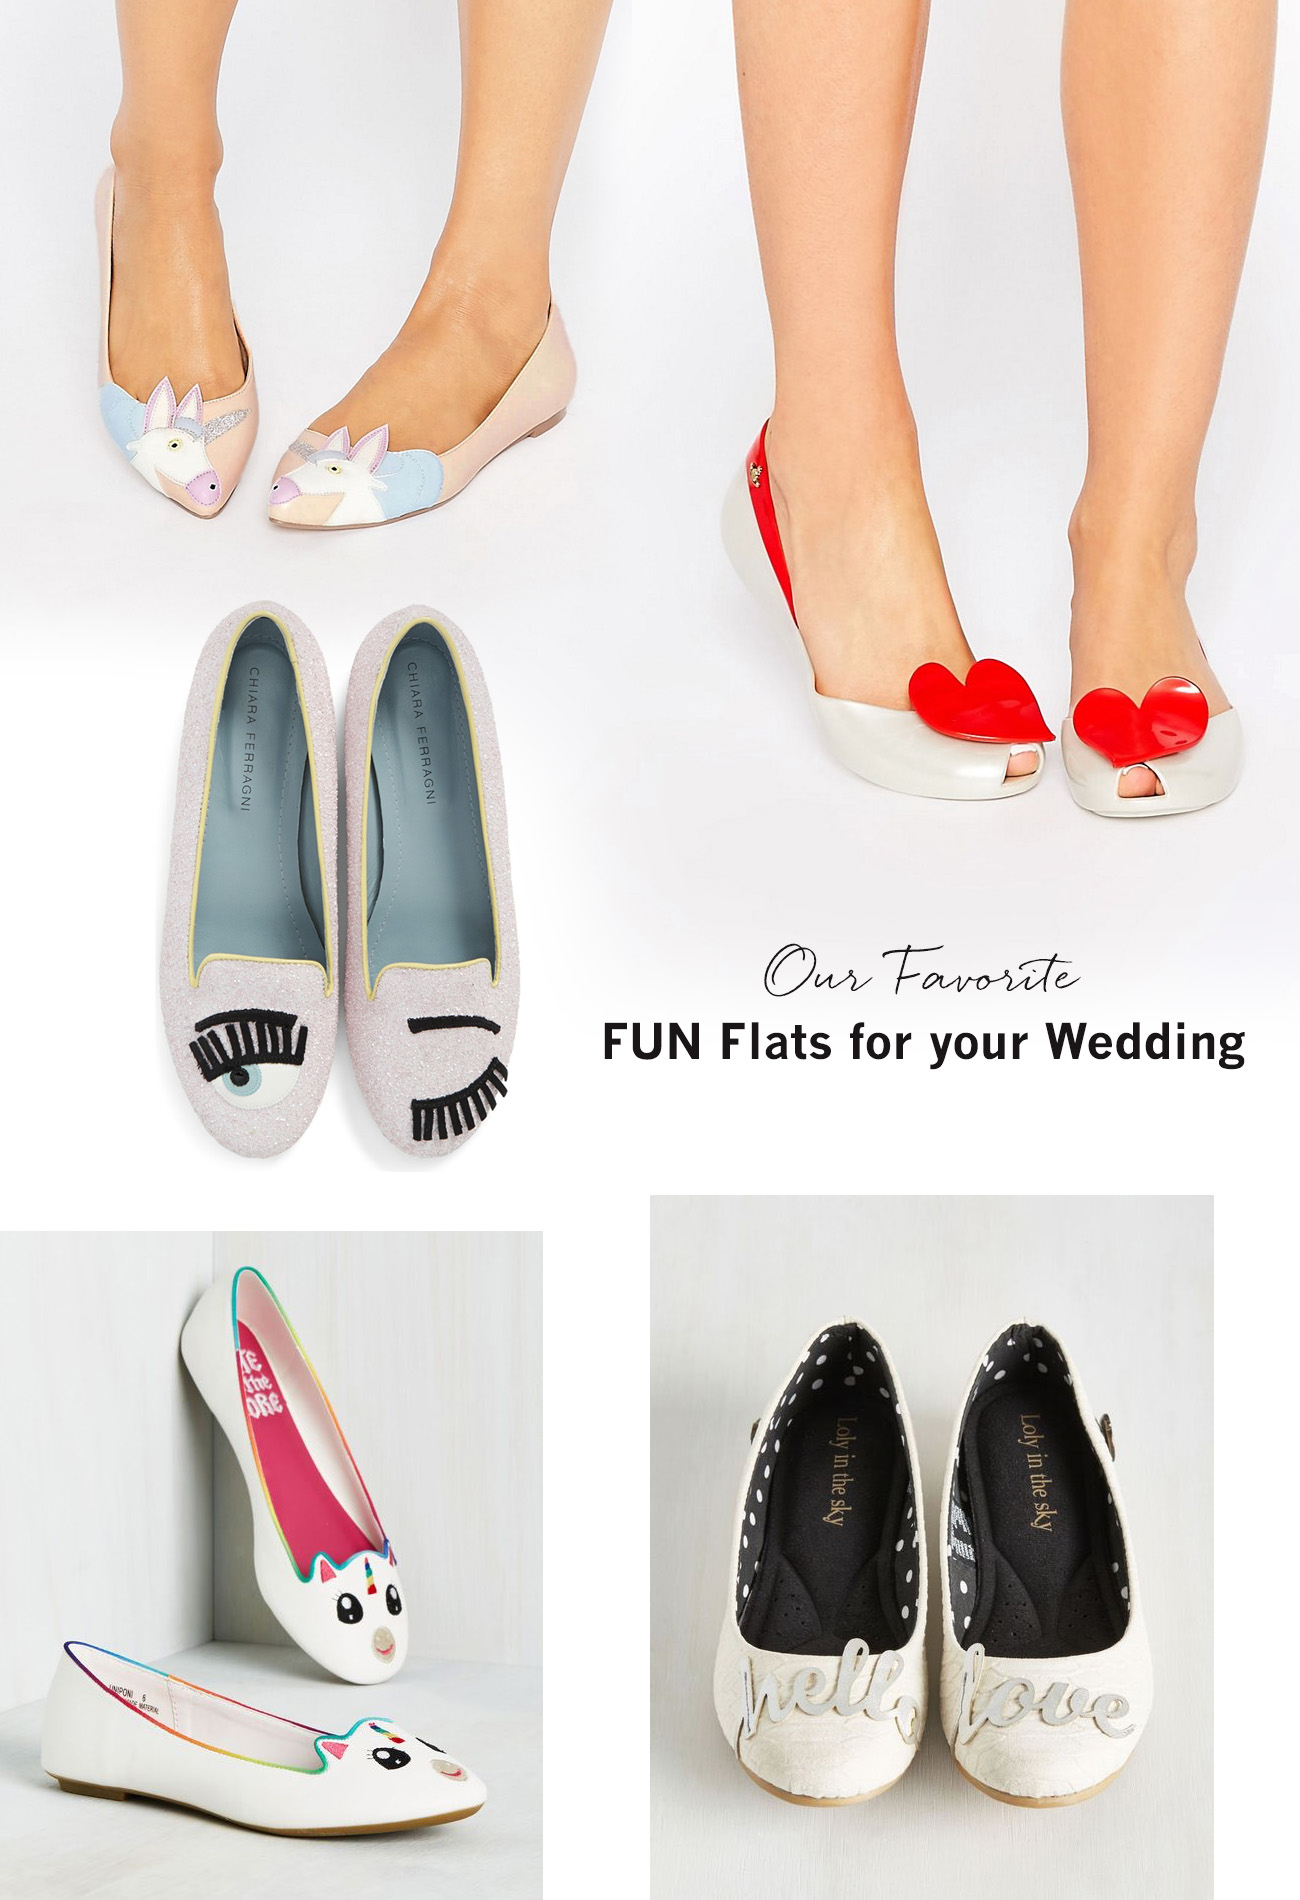 Our Favorite FUN Flats for Your Wedding